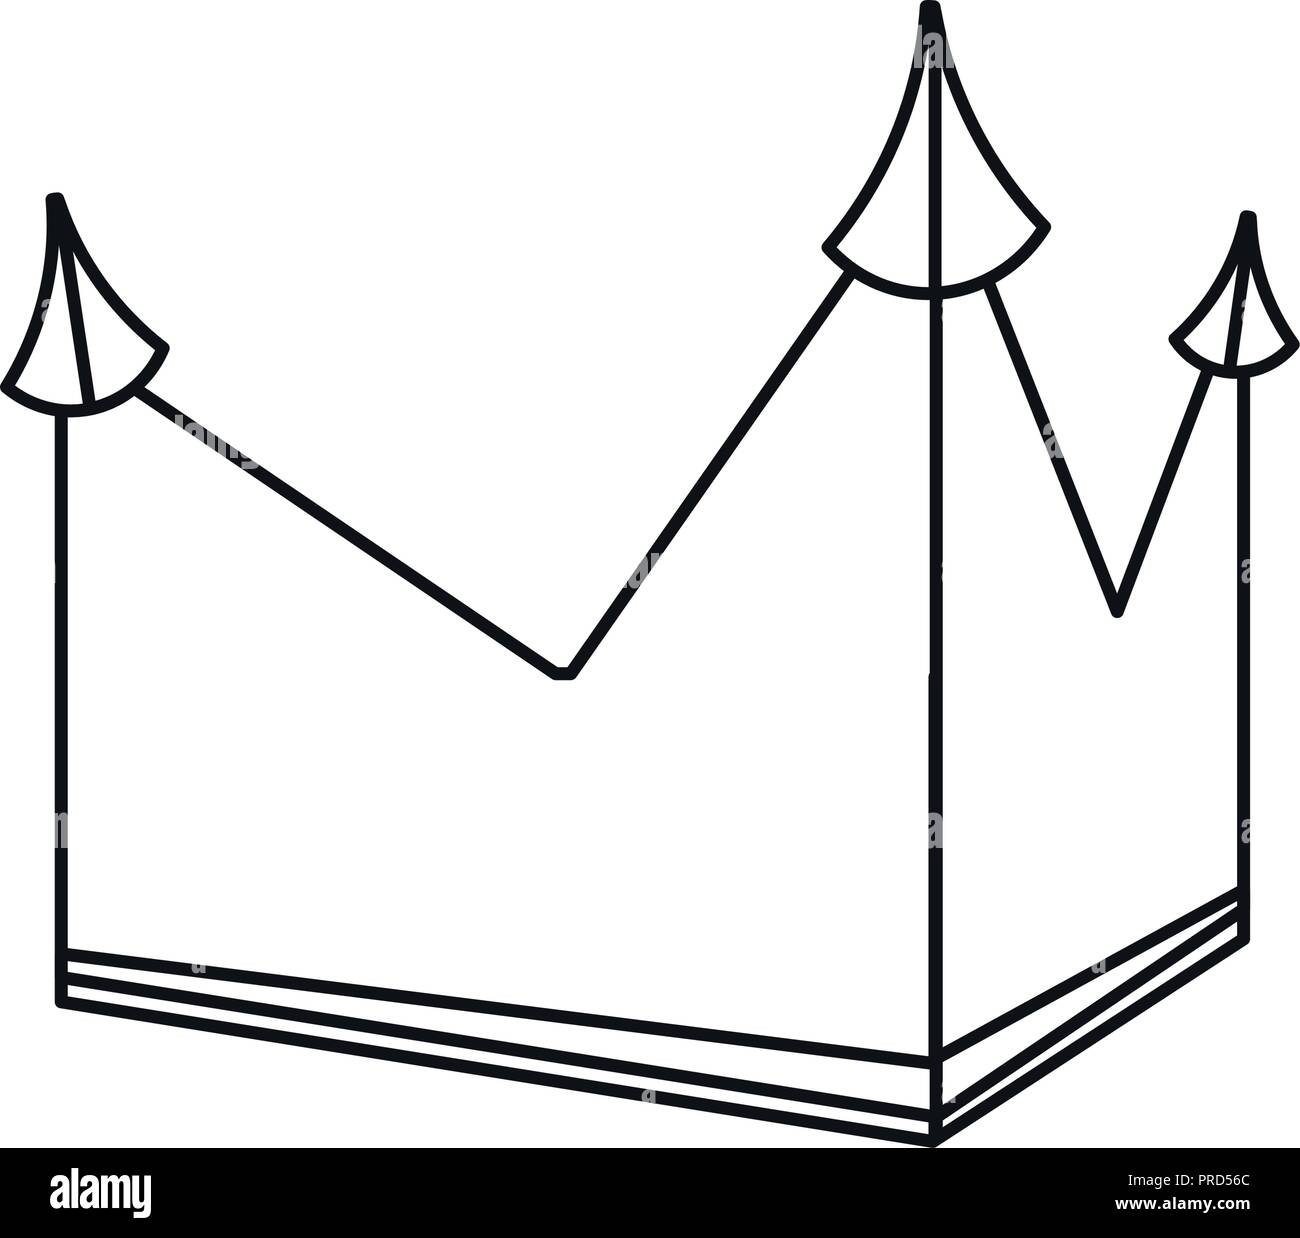 crown royalty monarchy outline geometric vector illustration - Stock Vector